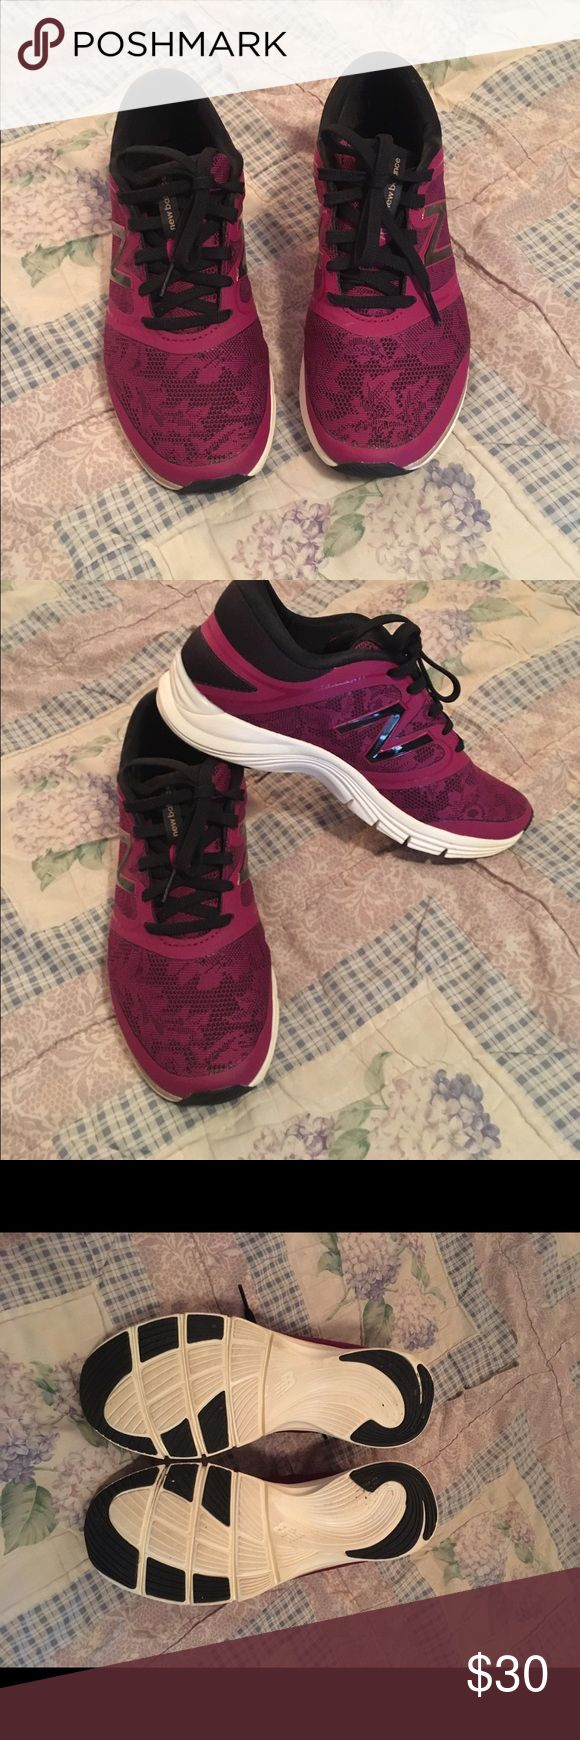 Cross training shoes New Balance Heel Pillow comfort insert athletic shoes, pretty raspberry lace fabric New Balance Shoes Sneakers